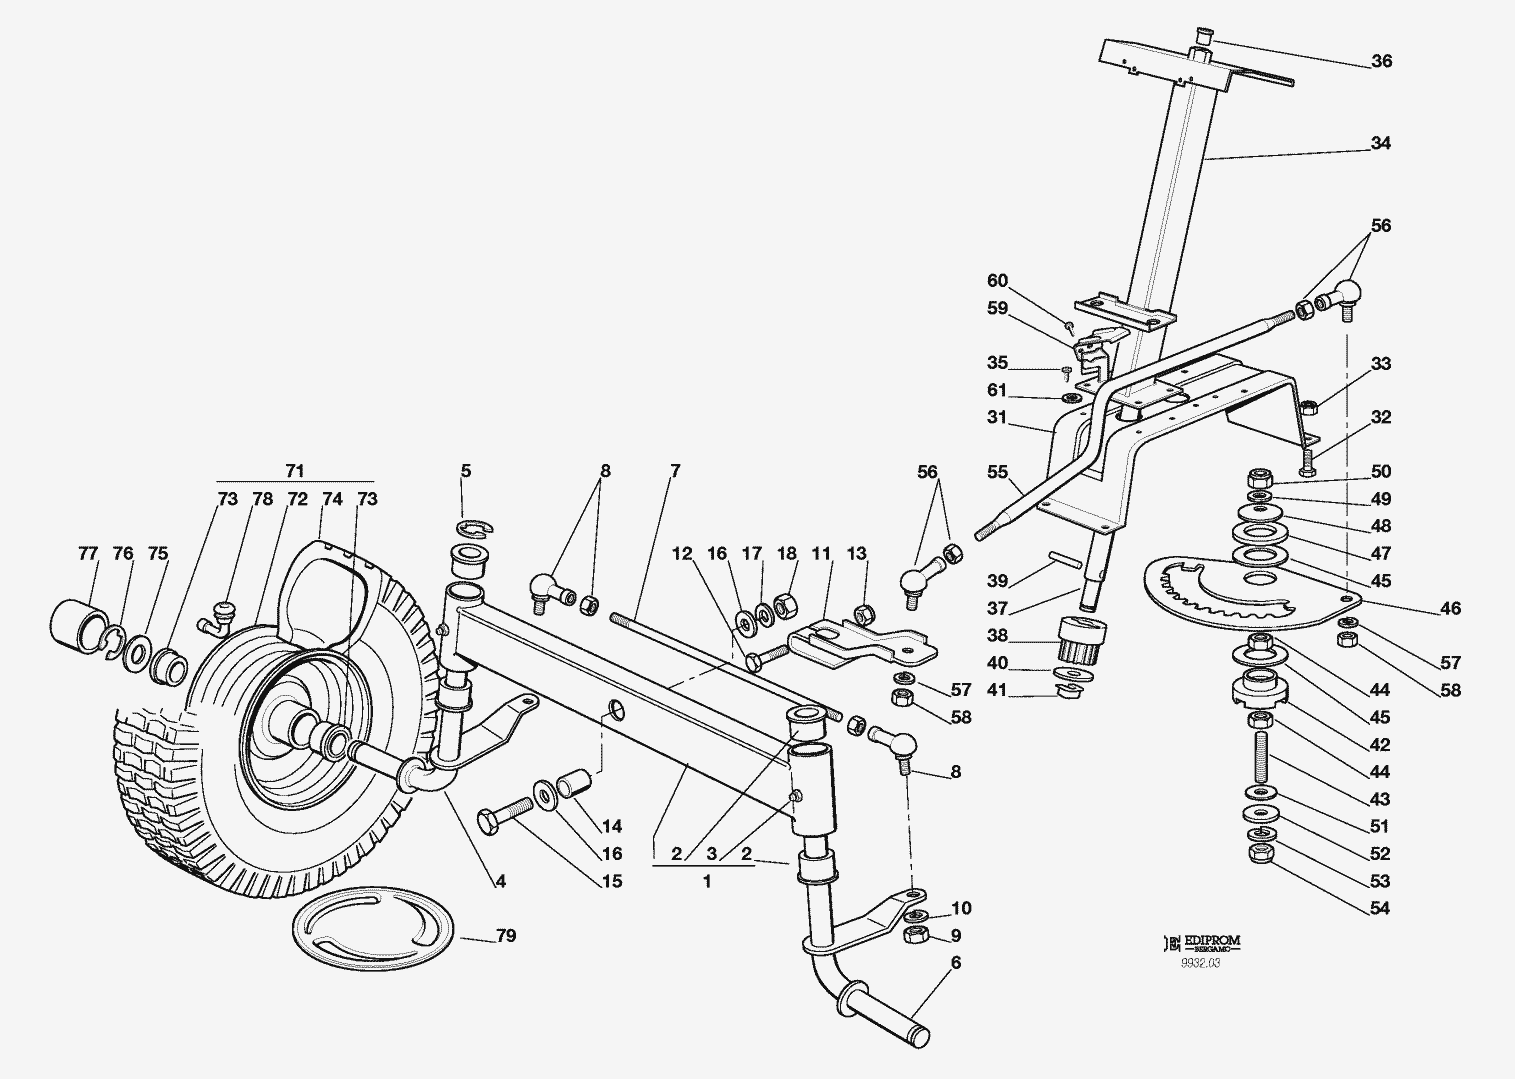 Spare Parts Lists for Solo Lawn Mower STEERING